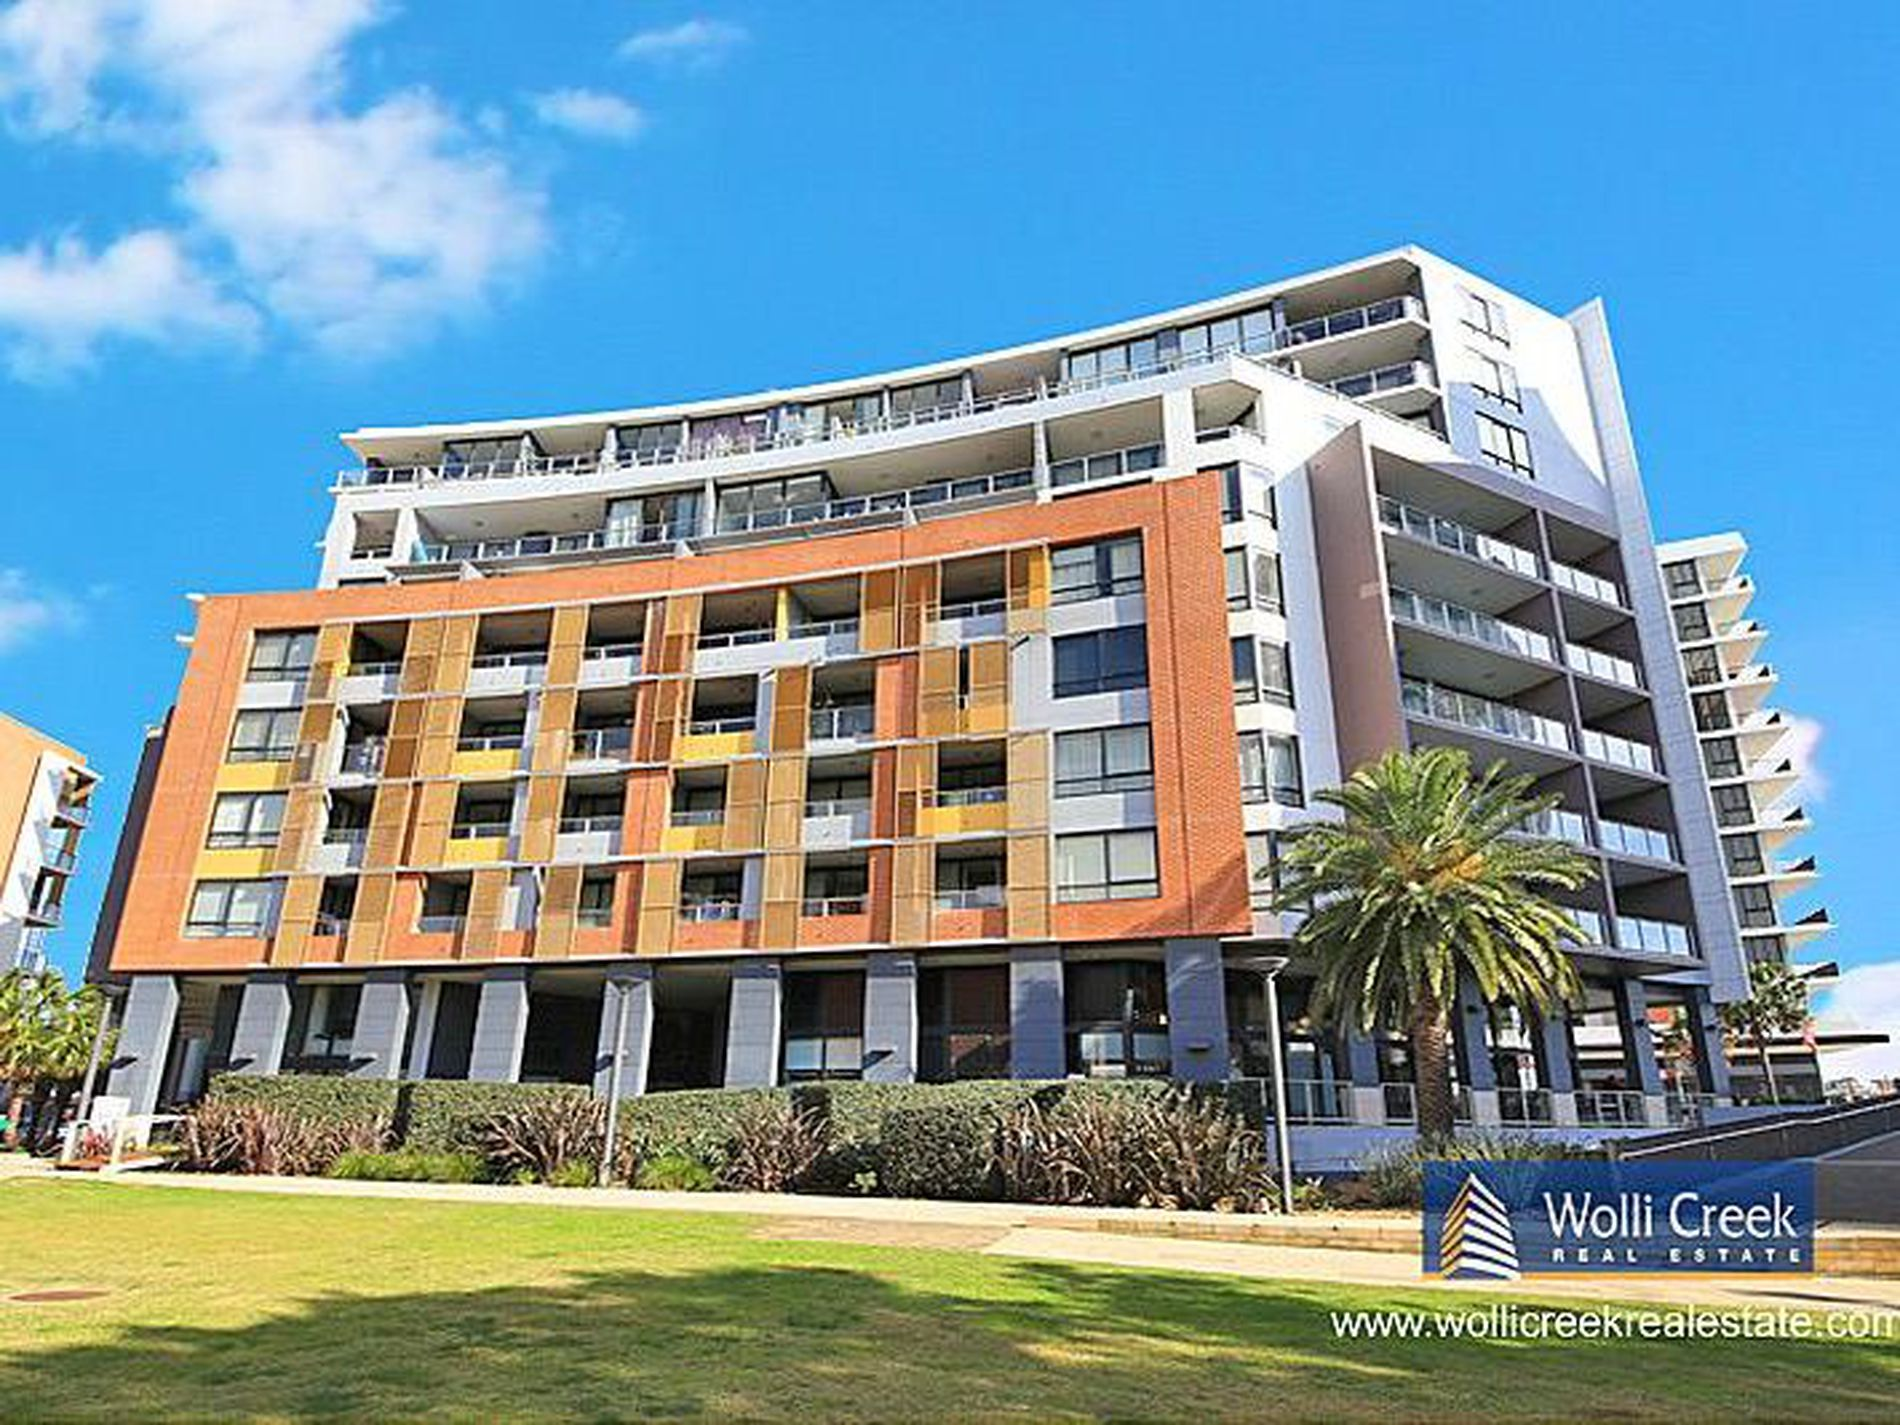 609 / 10 Brodie Spark Drive, Wolli Creek